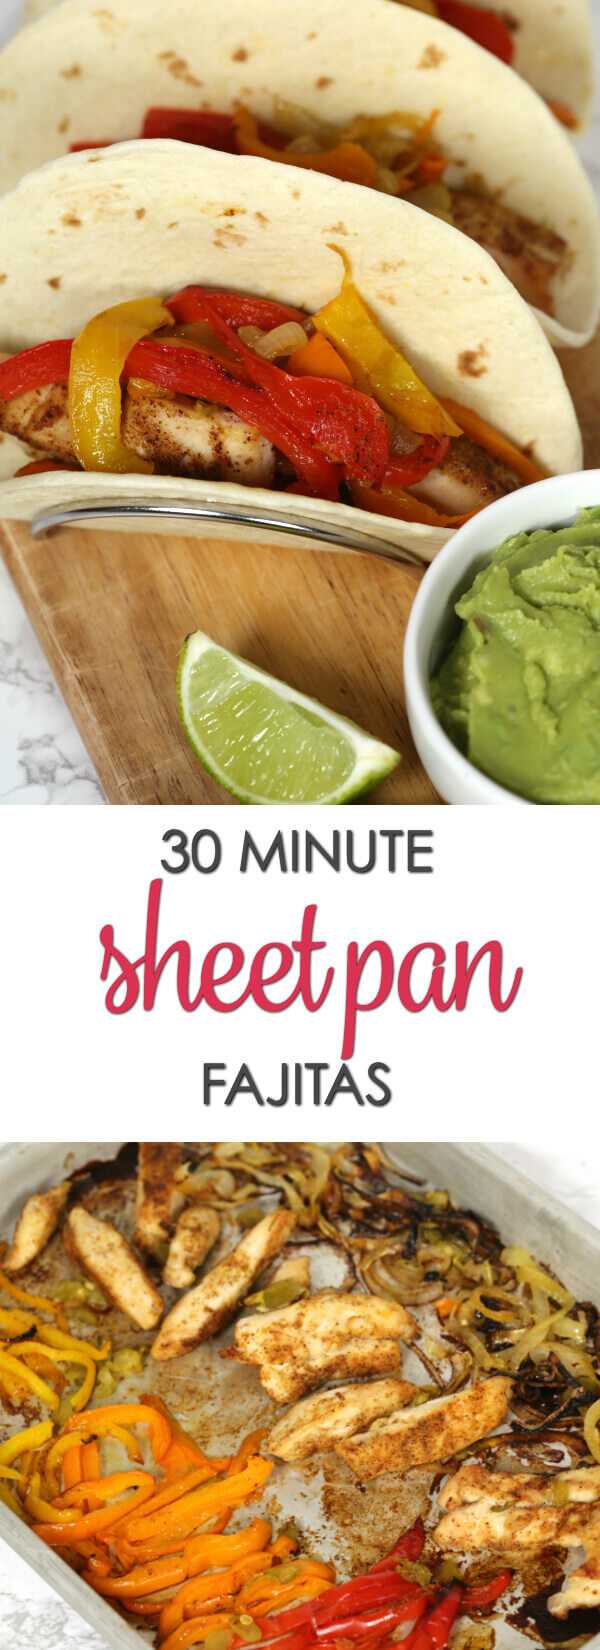 Sheet Pan Fajitas - this easy Tex Mex inspired recipe is ready in less than 30 minutes